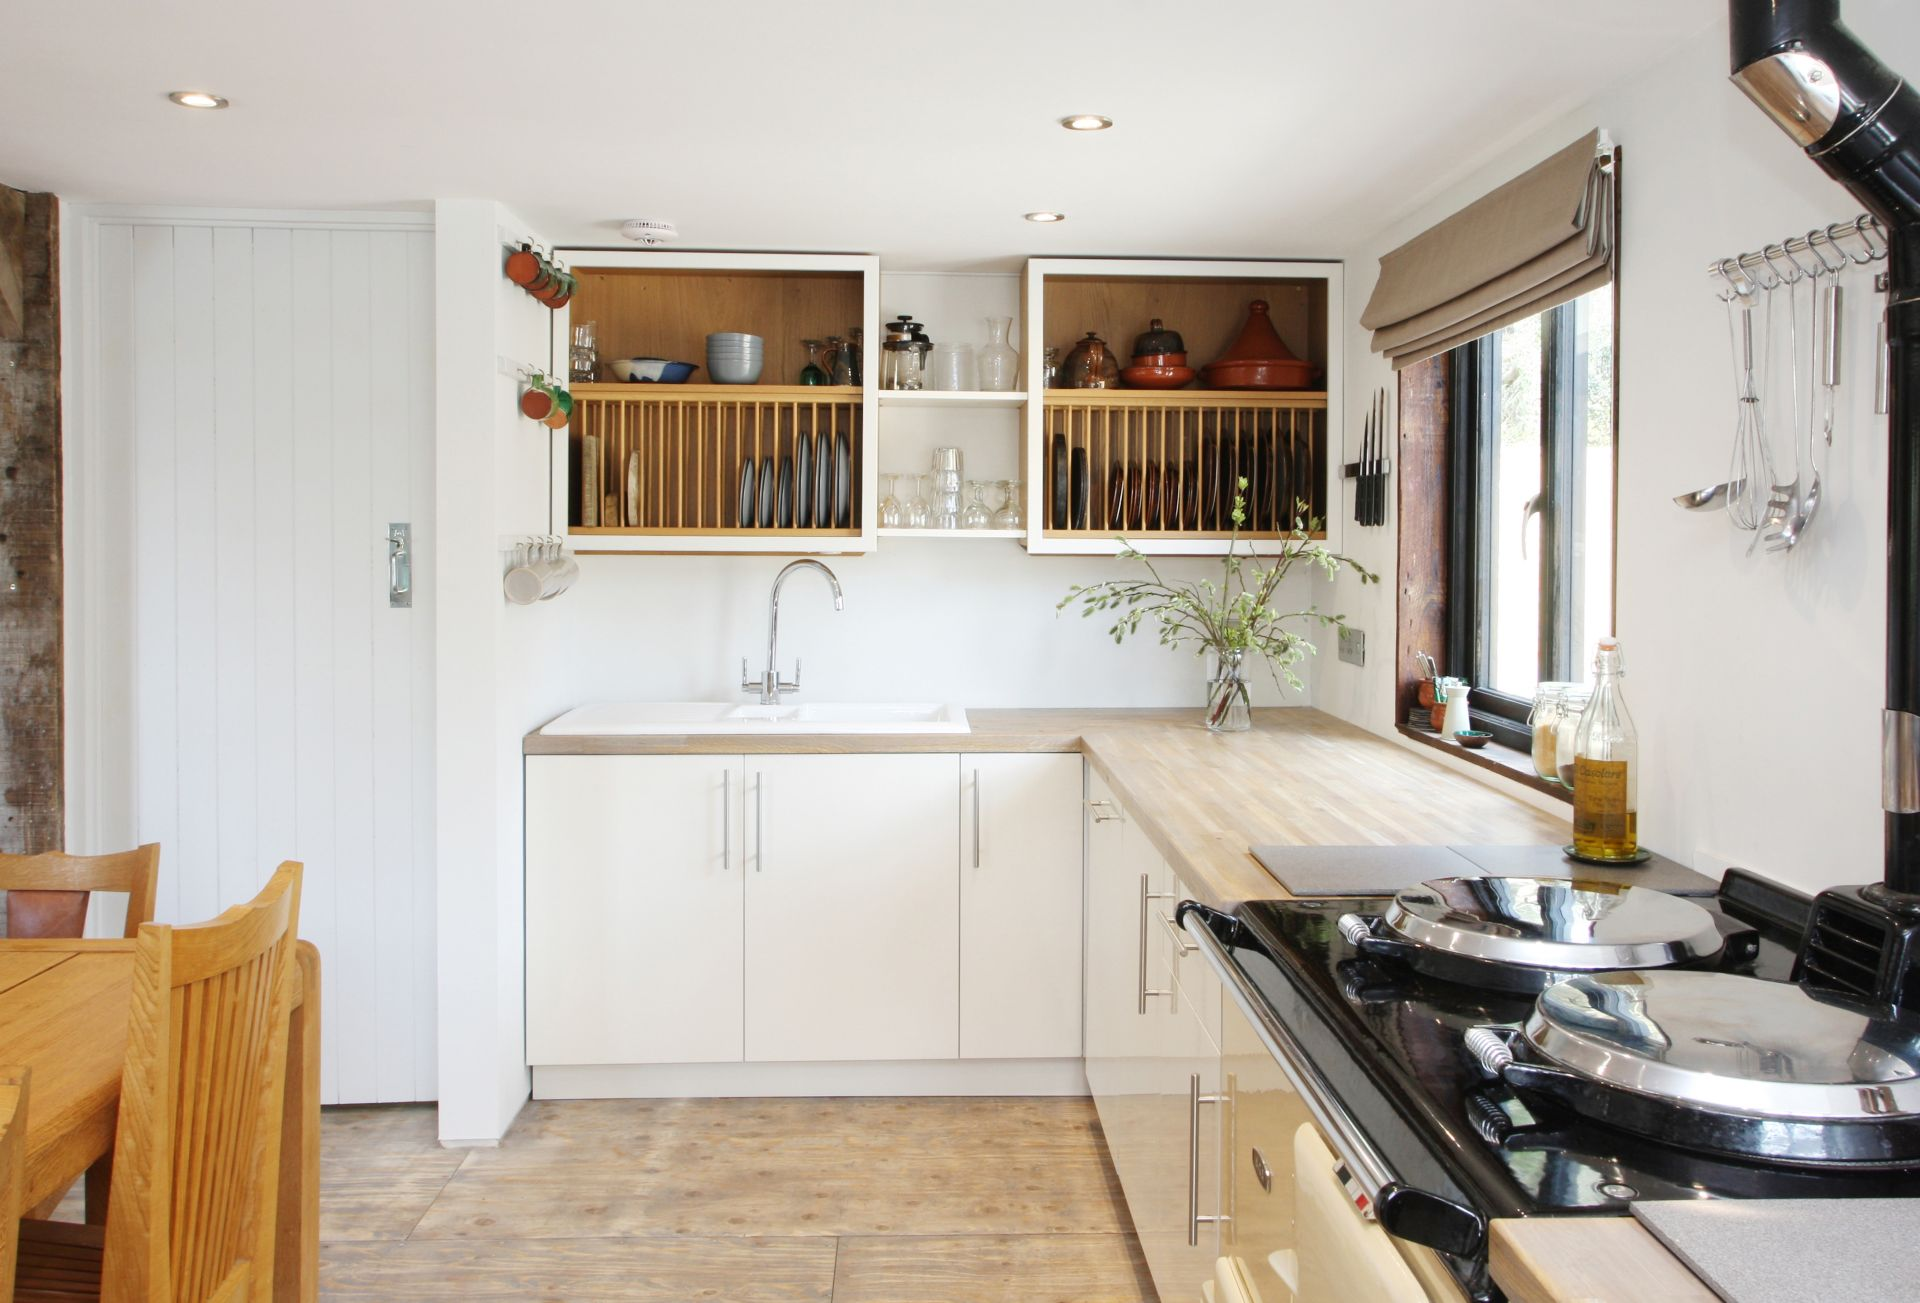 Ground floor: Open plan Kitchen with Aga